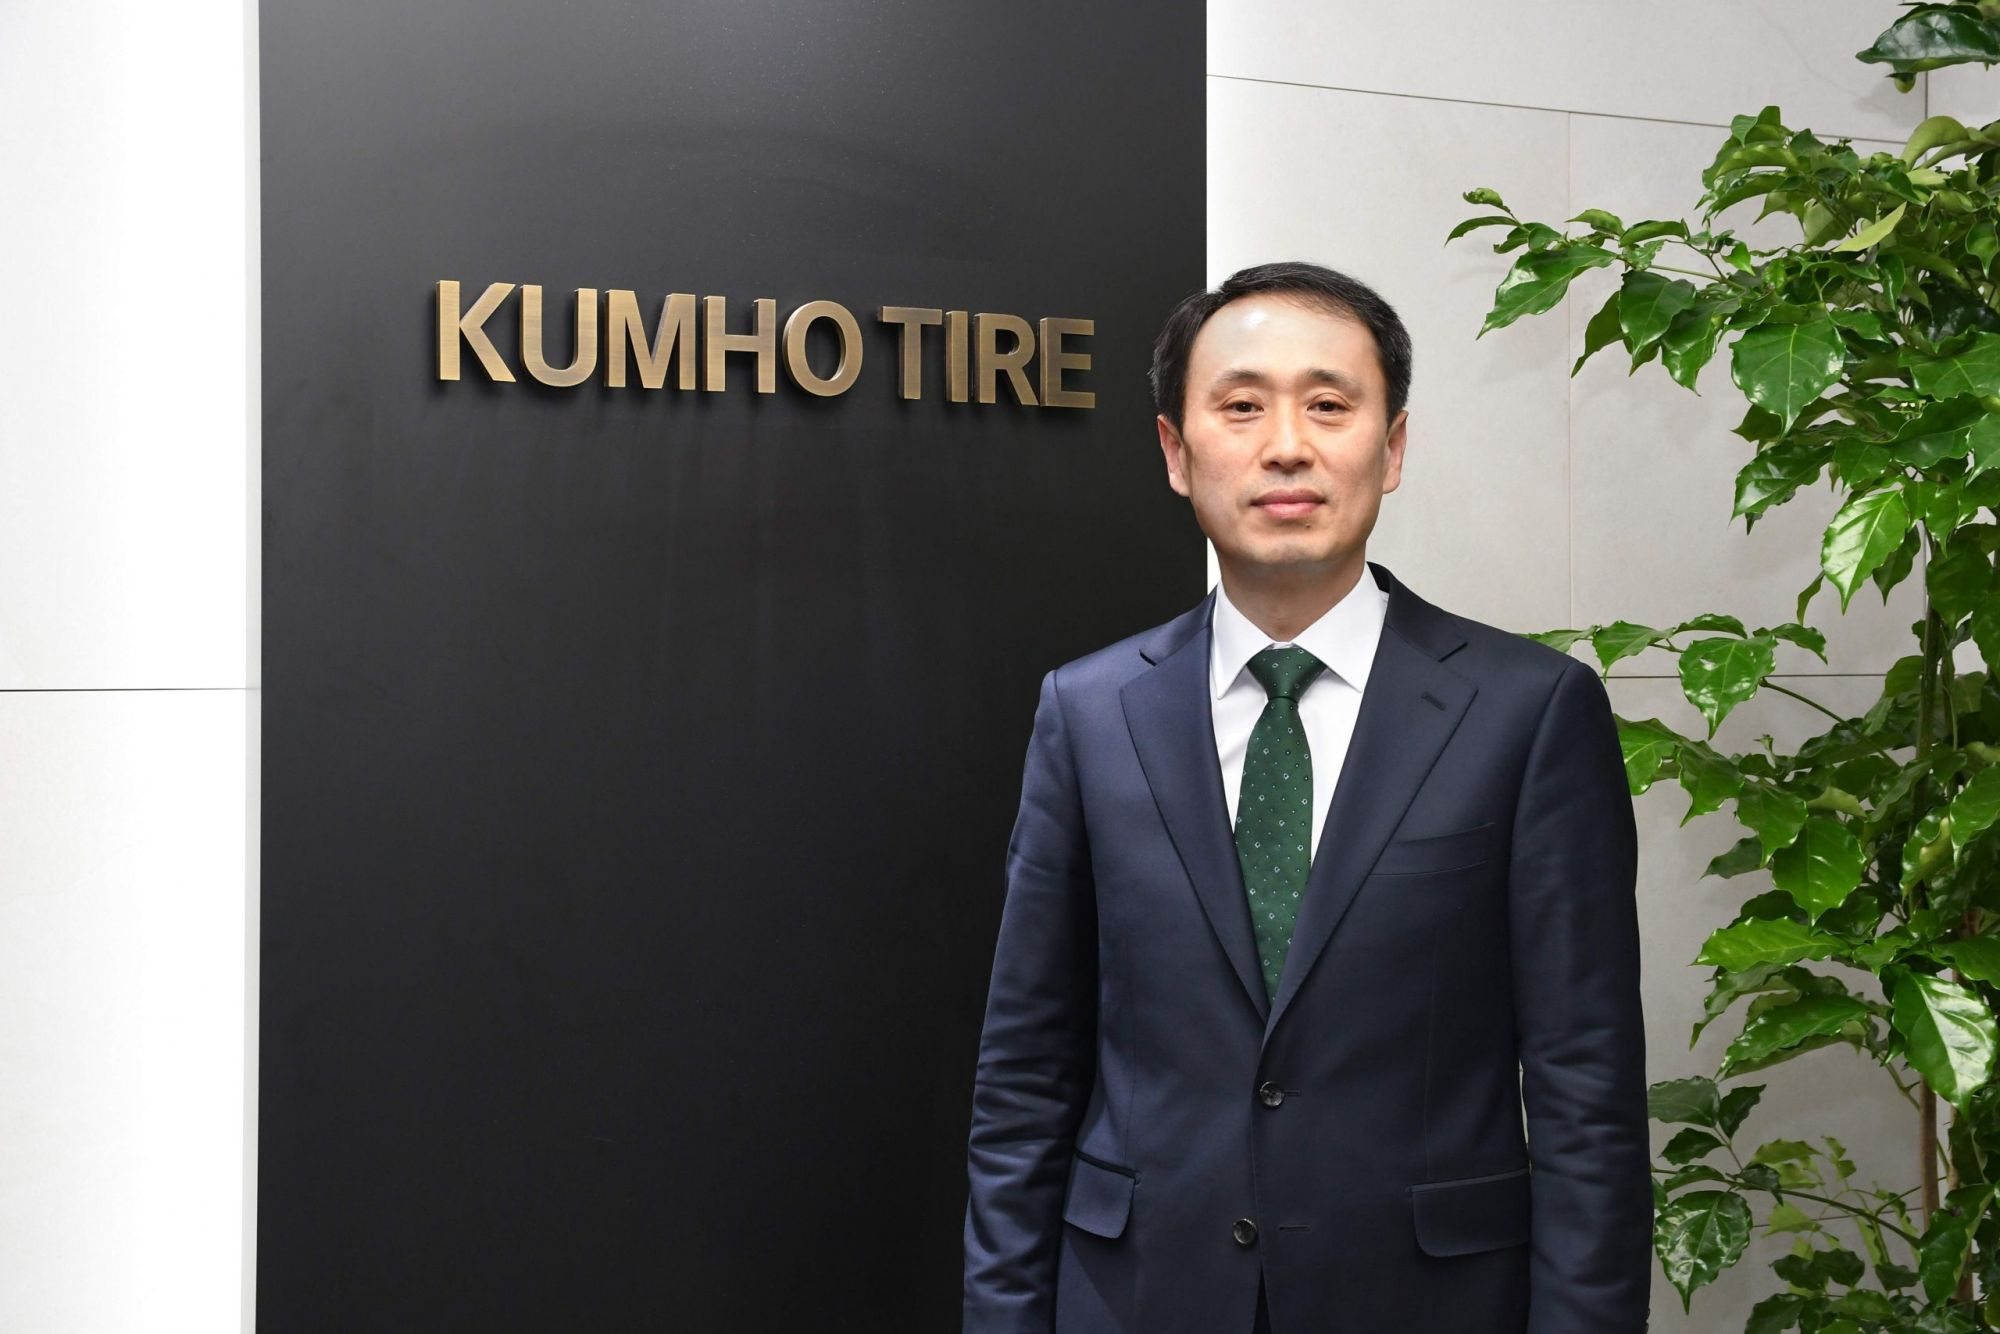 Tony Lee ist seit dem 1. Januar 2021 als Senior Vice President Global Marketing für Kumho tätig. Bildquelle: Kumho.